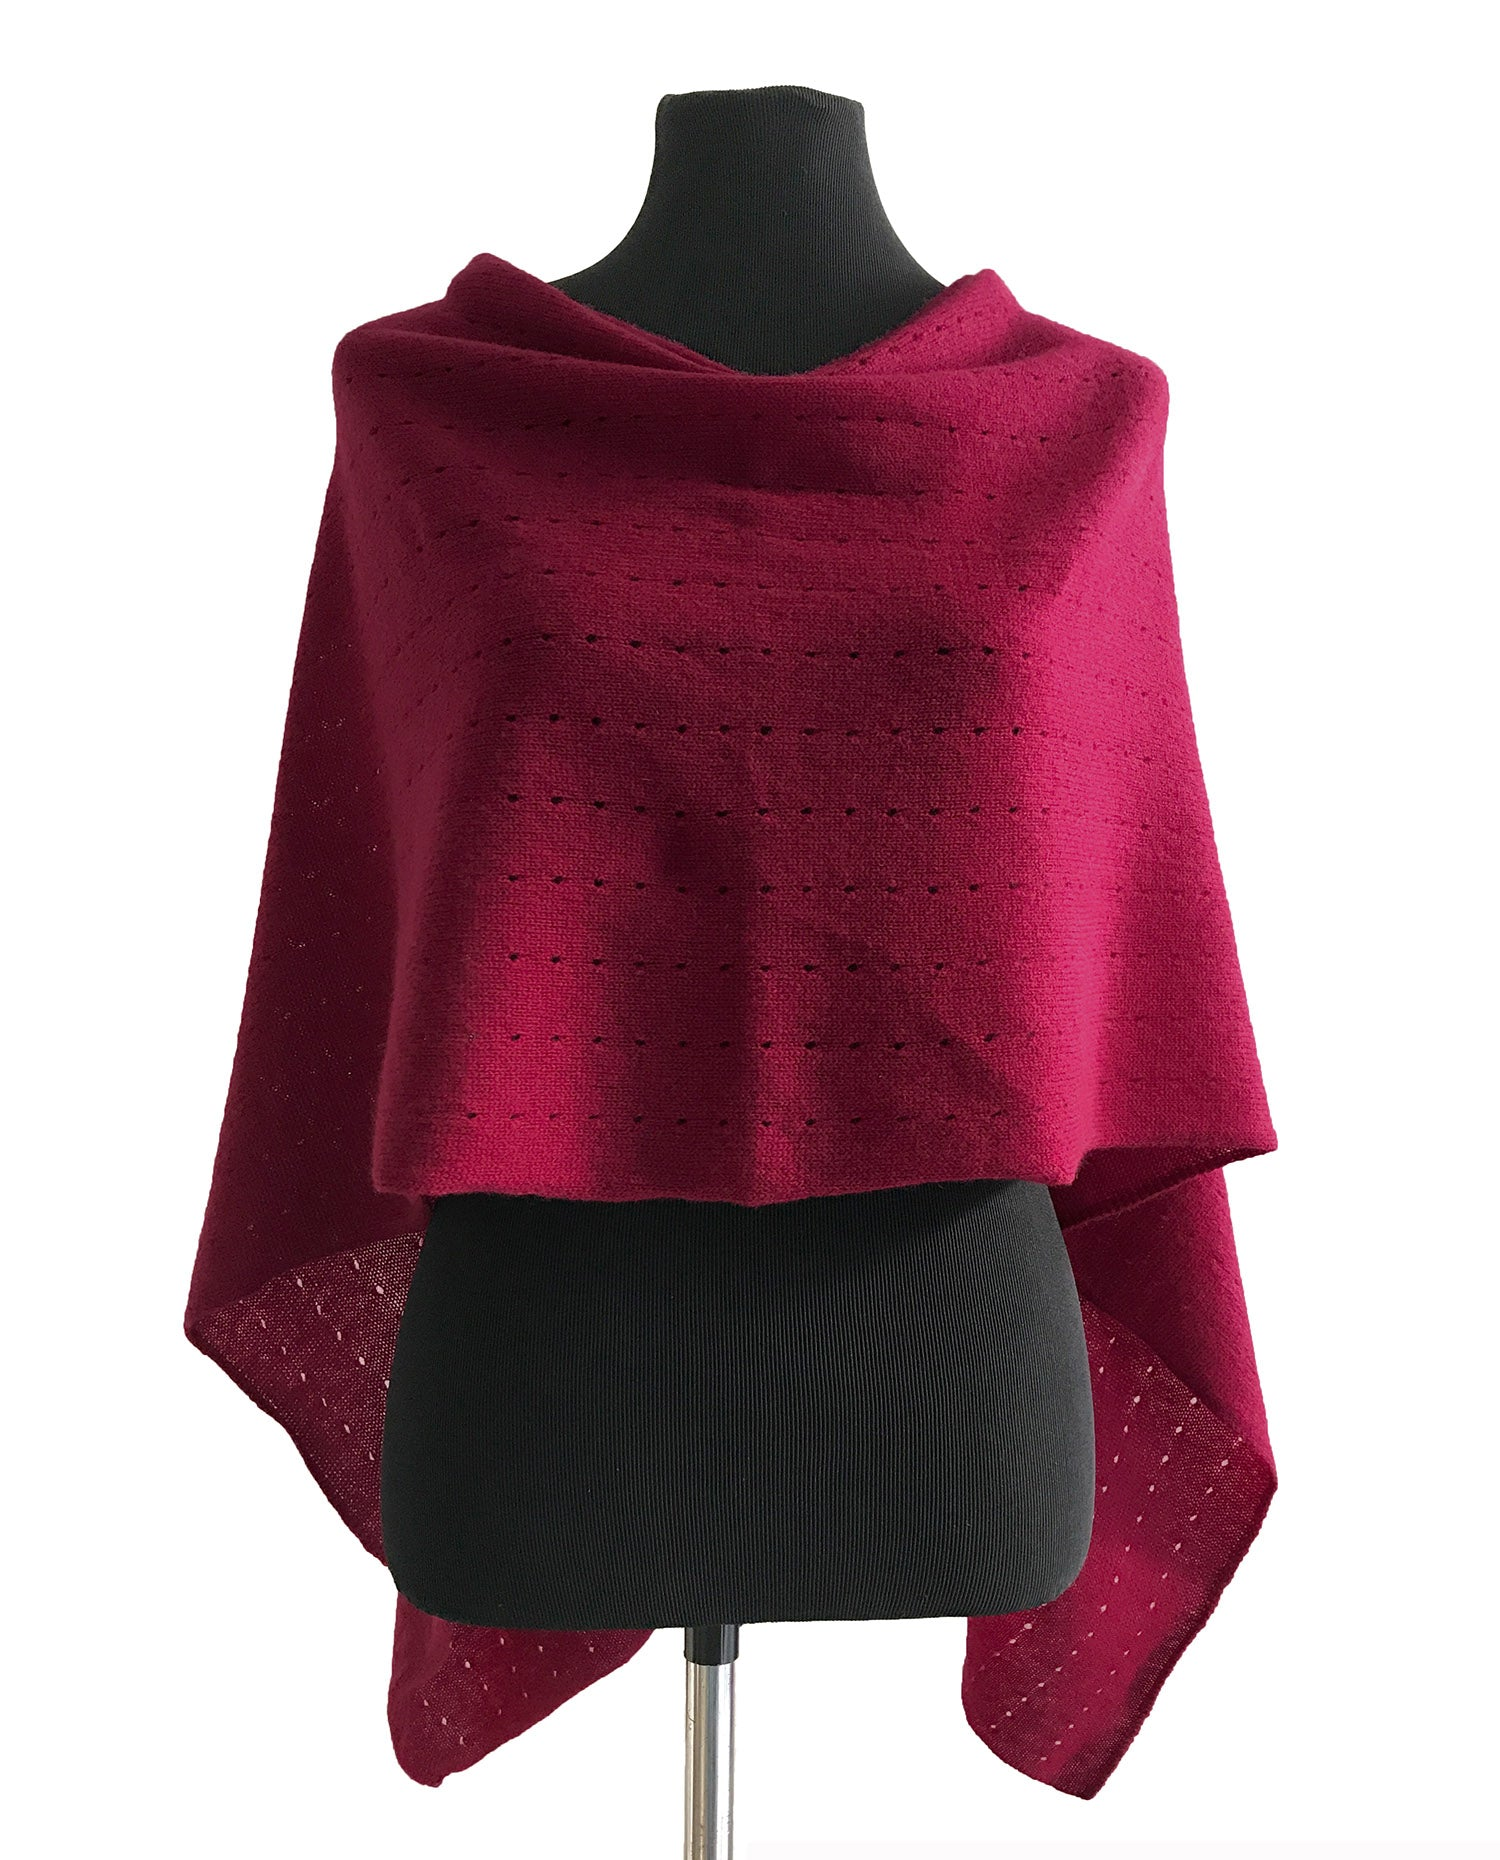 Multiwear Cashmere Poncho in Deep cherry red pink